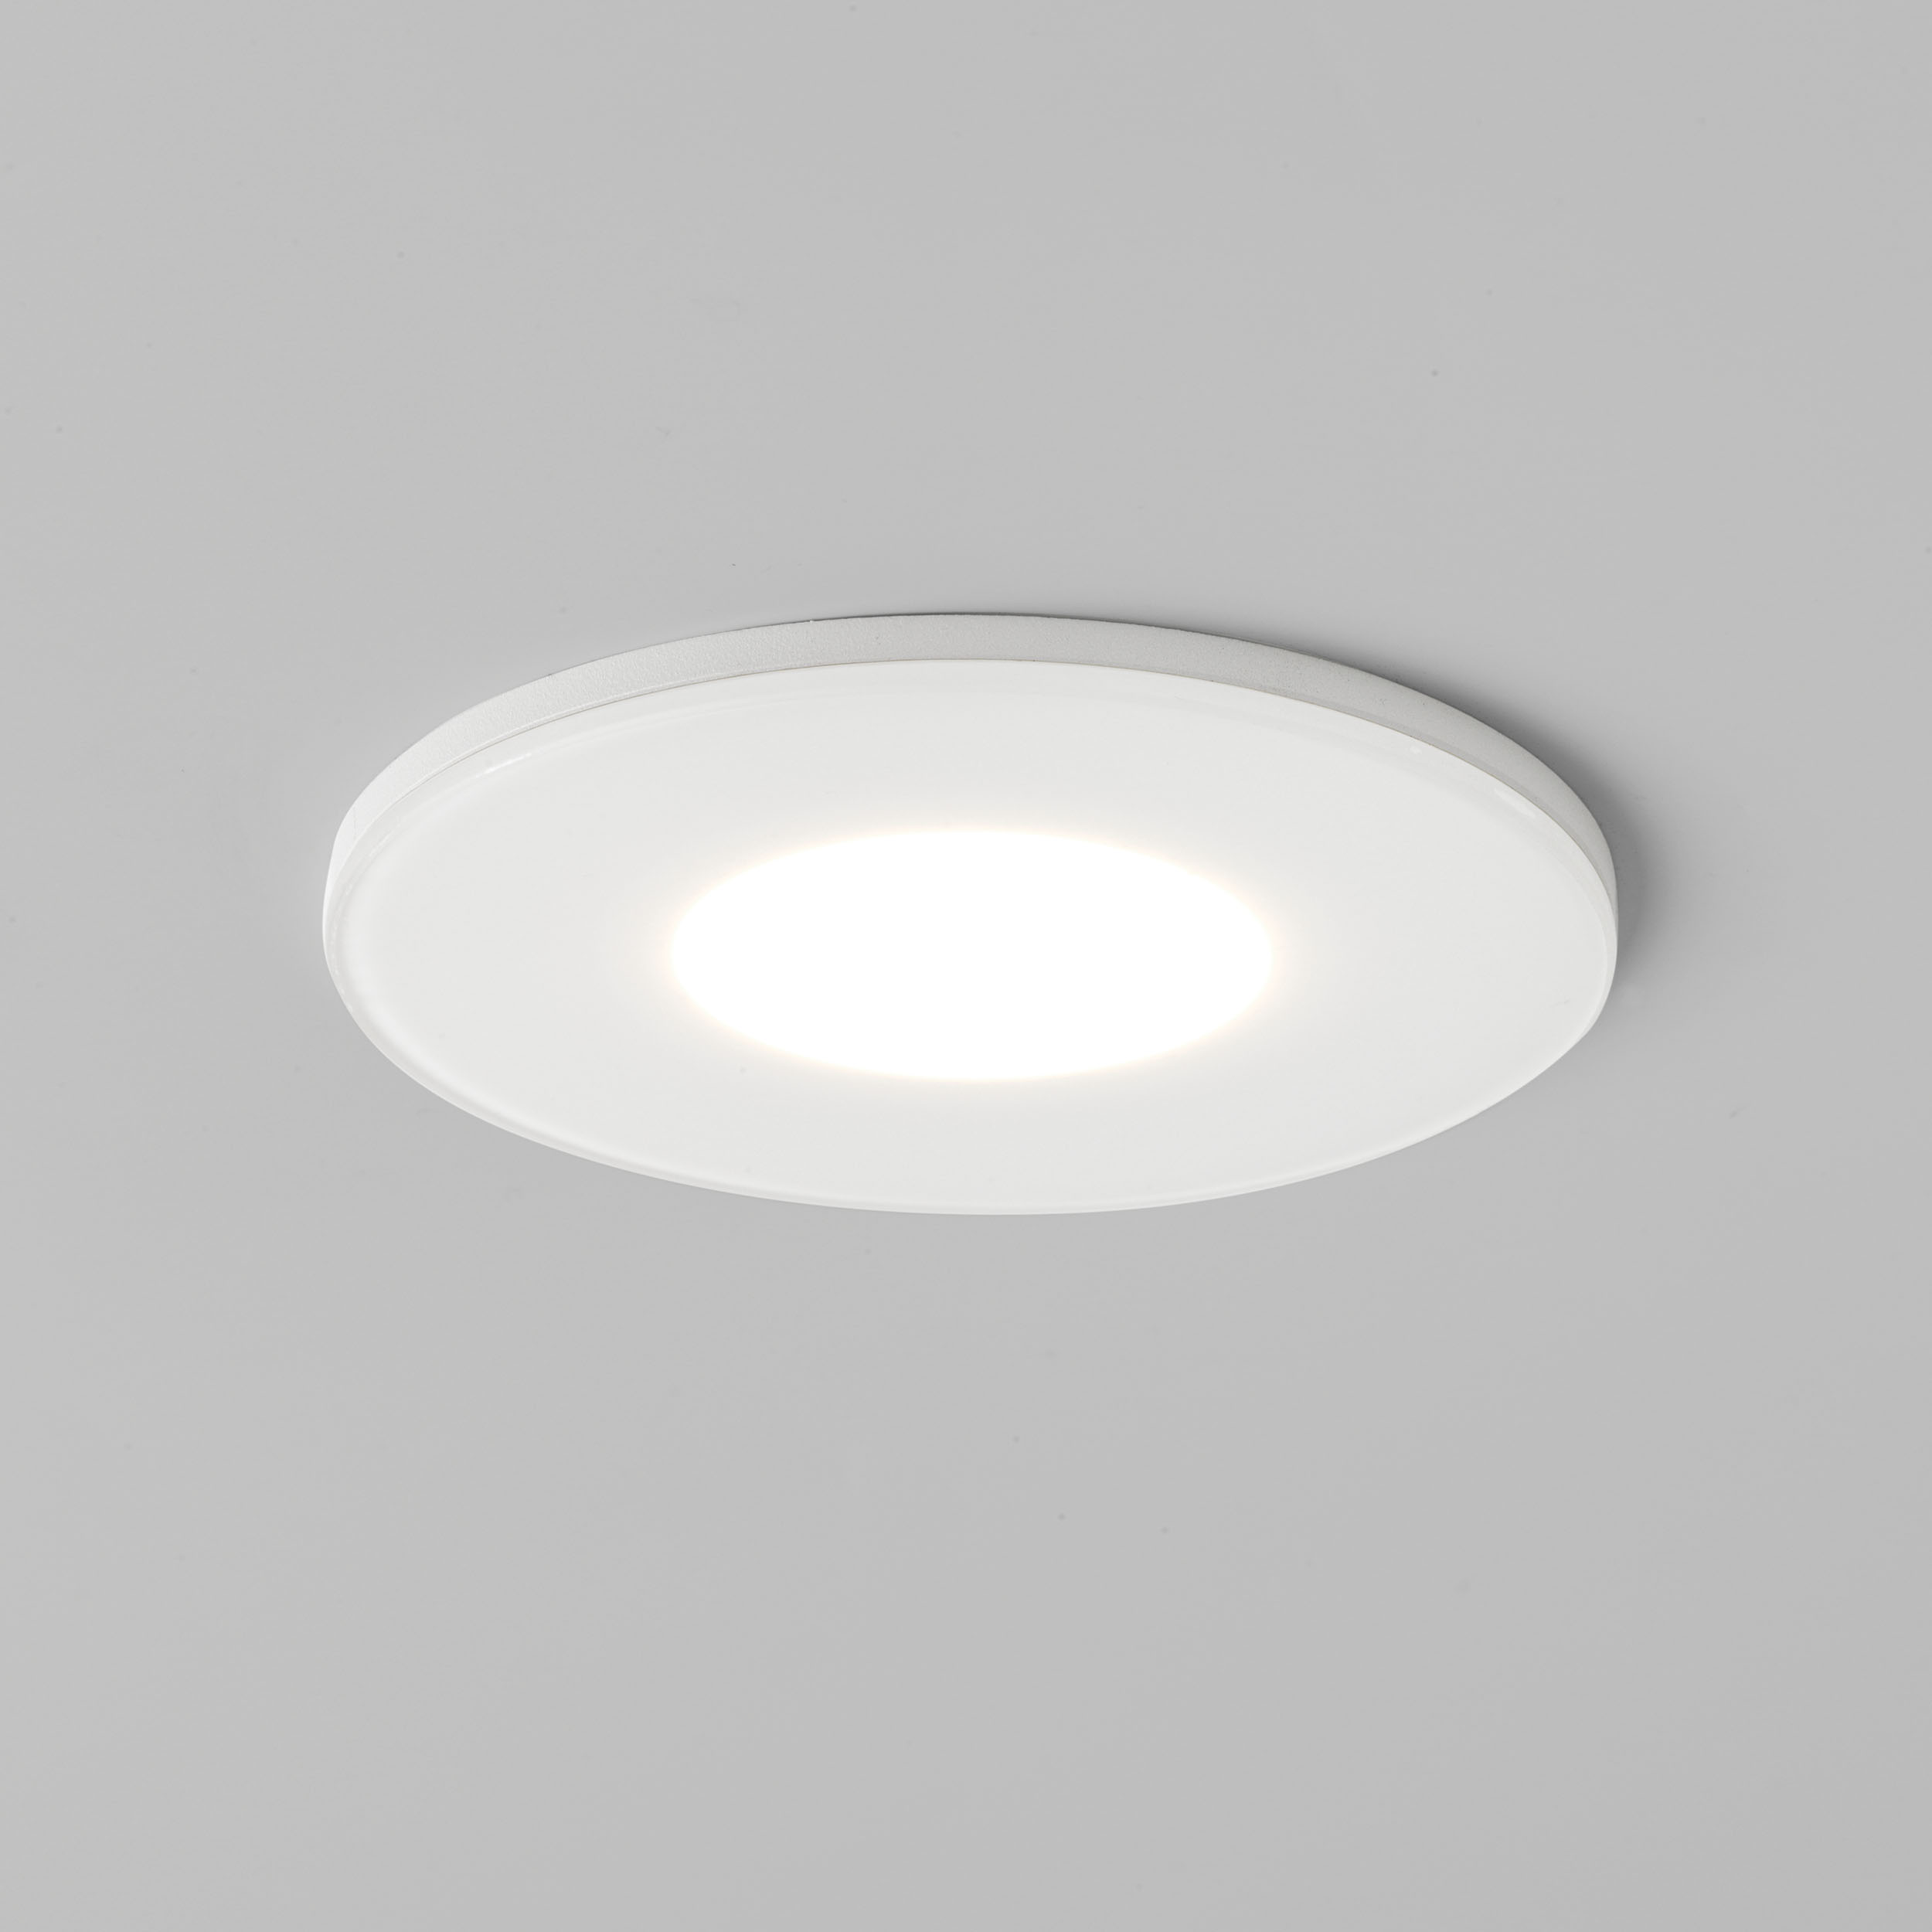 LED bathroom downlights fixed Astro Mayfair shower IP65 7.4W white 2700K Thumbnail 1